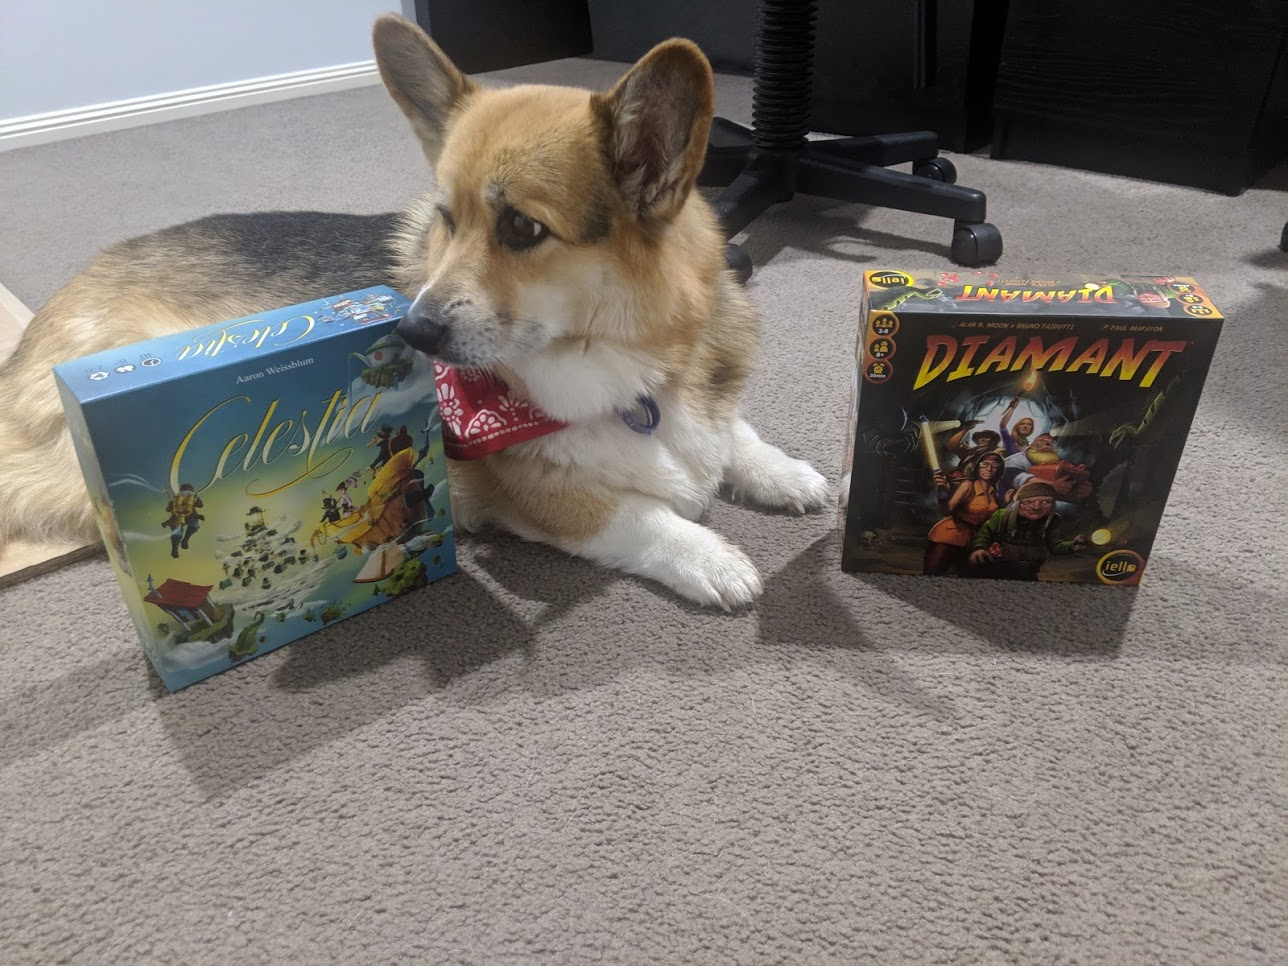 Chester the corgi selects Celestia as winner between the two.